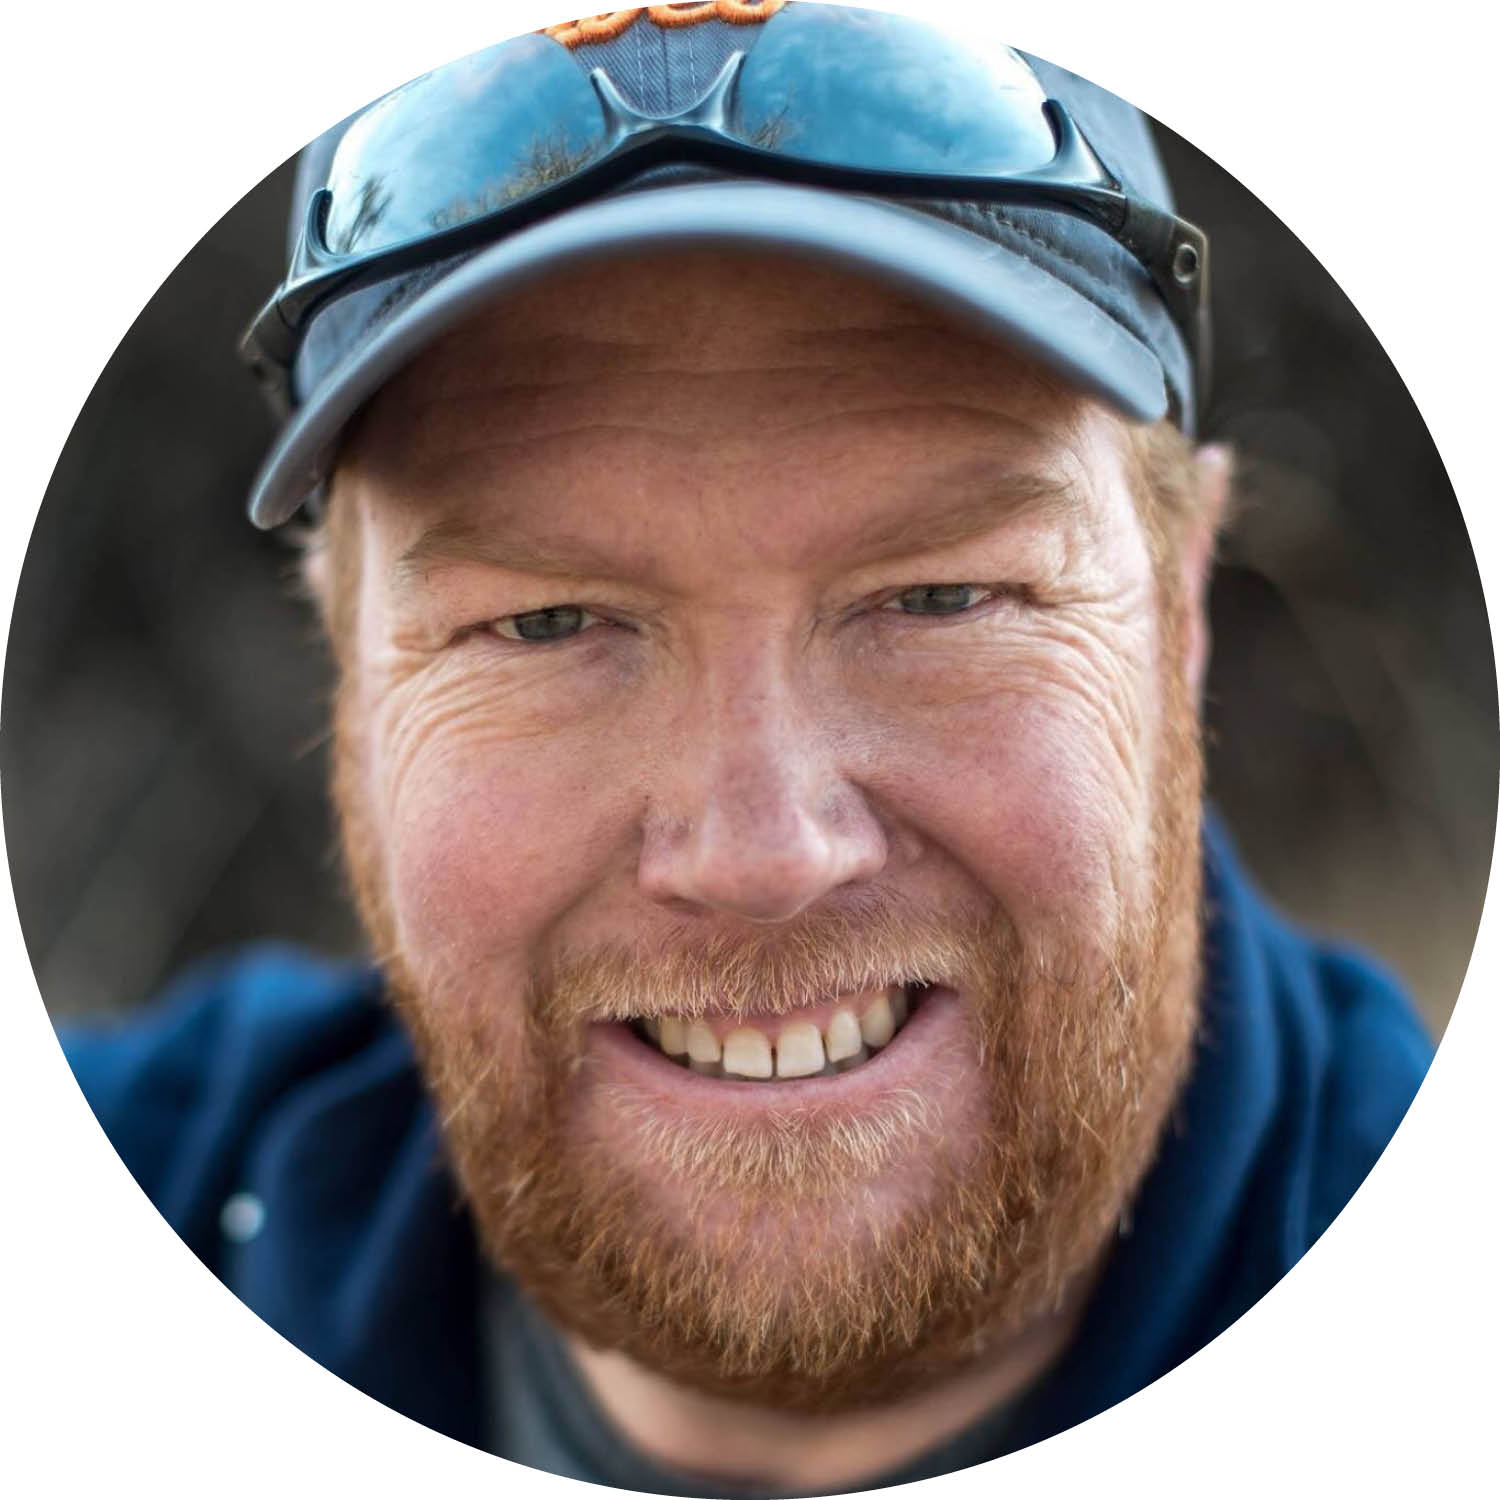 Meet Jeremy - Jeremy Bangs is a single father of a 9-year-old daughter, Olivia. He spent more than 17 years as a writer, photographer and managing editor for community newspapers along Colorado's Front Range.